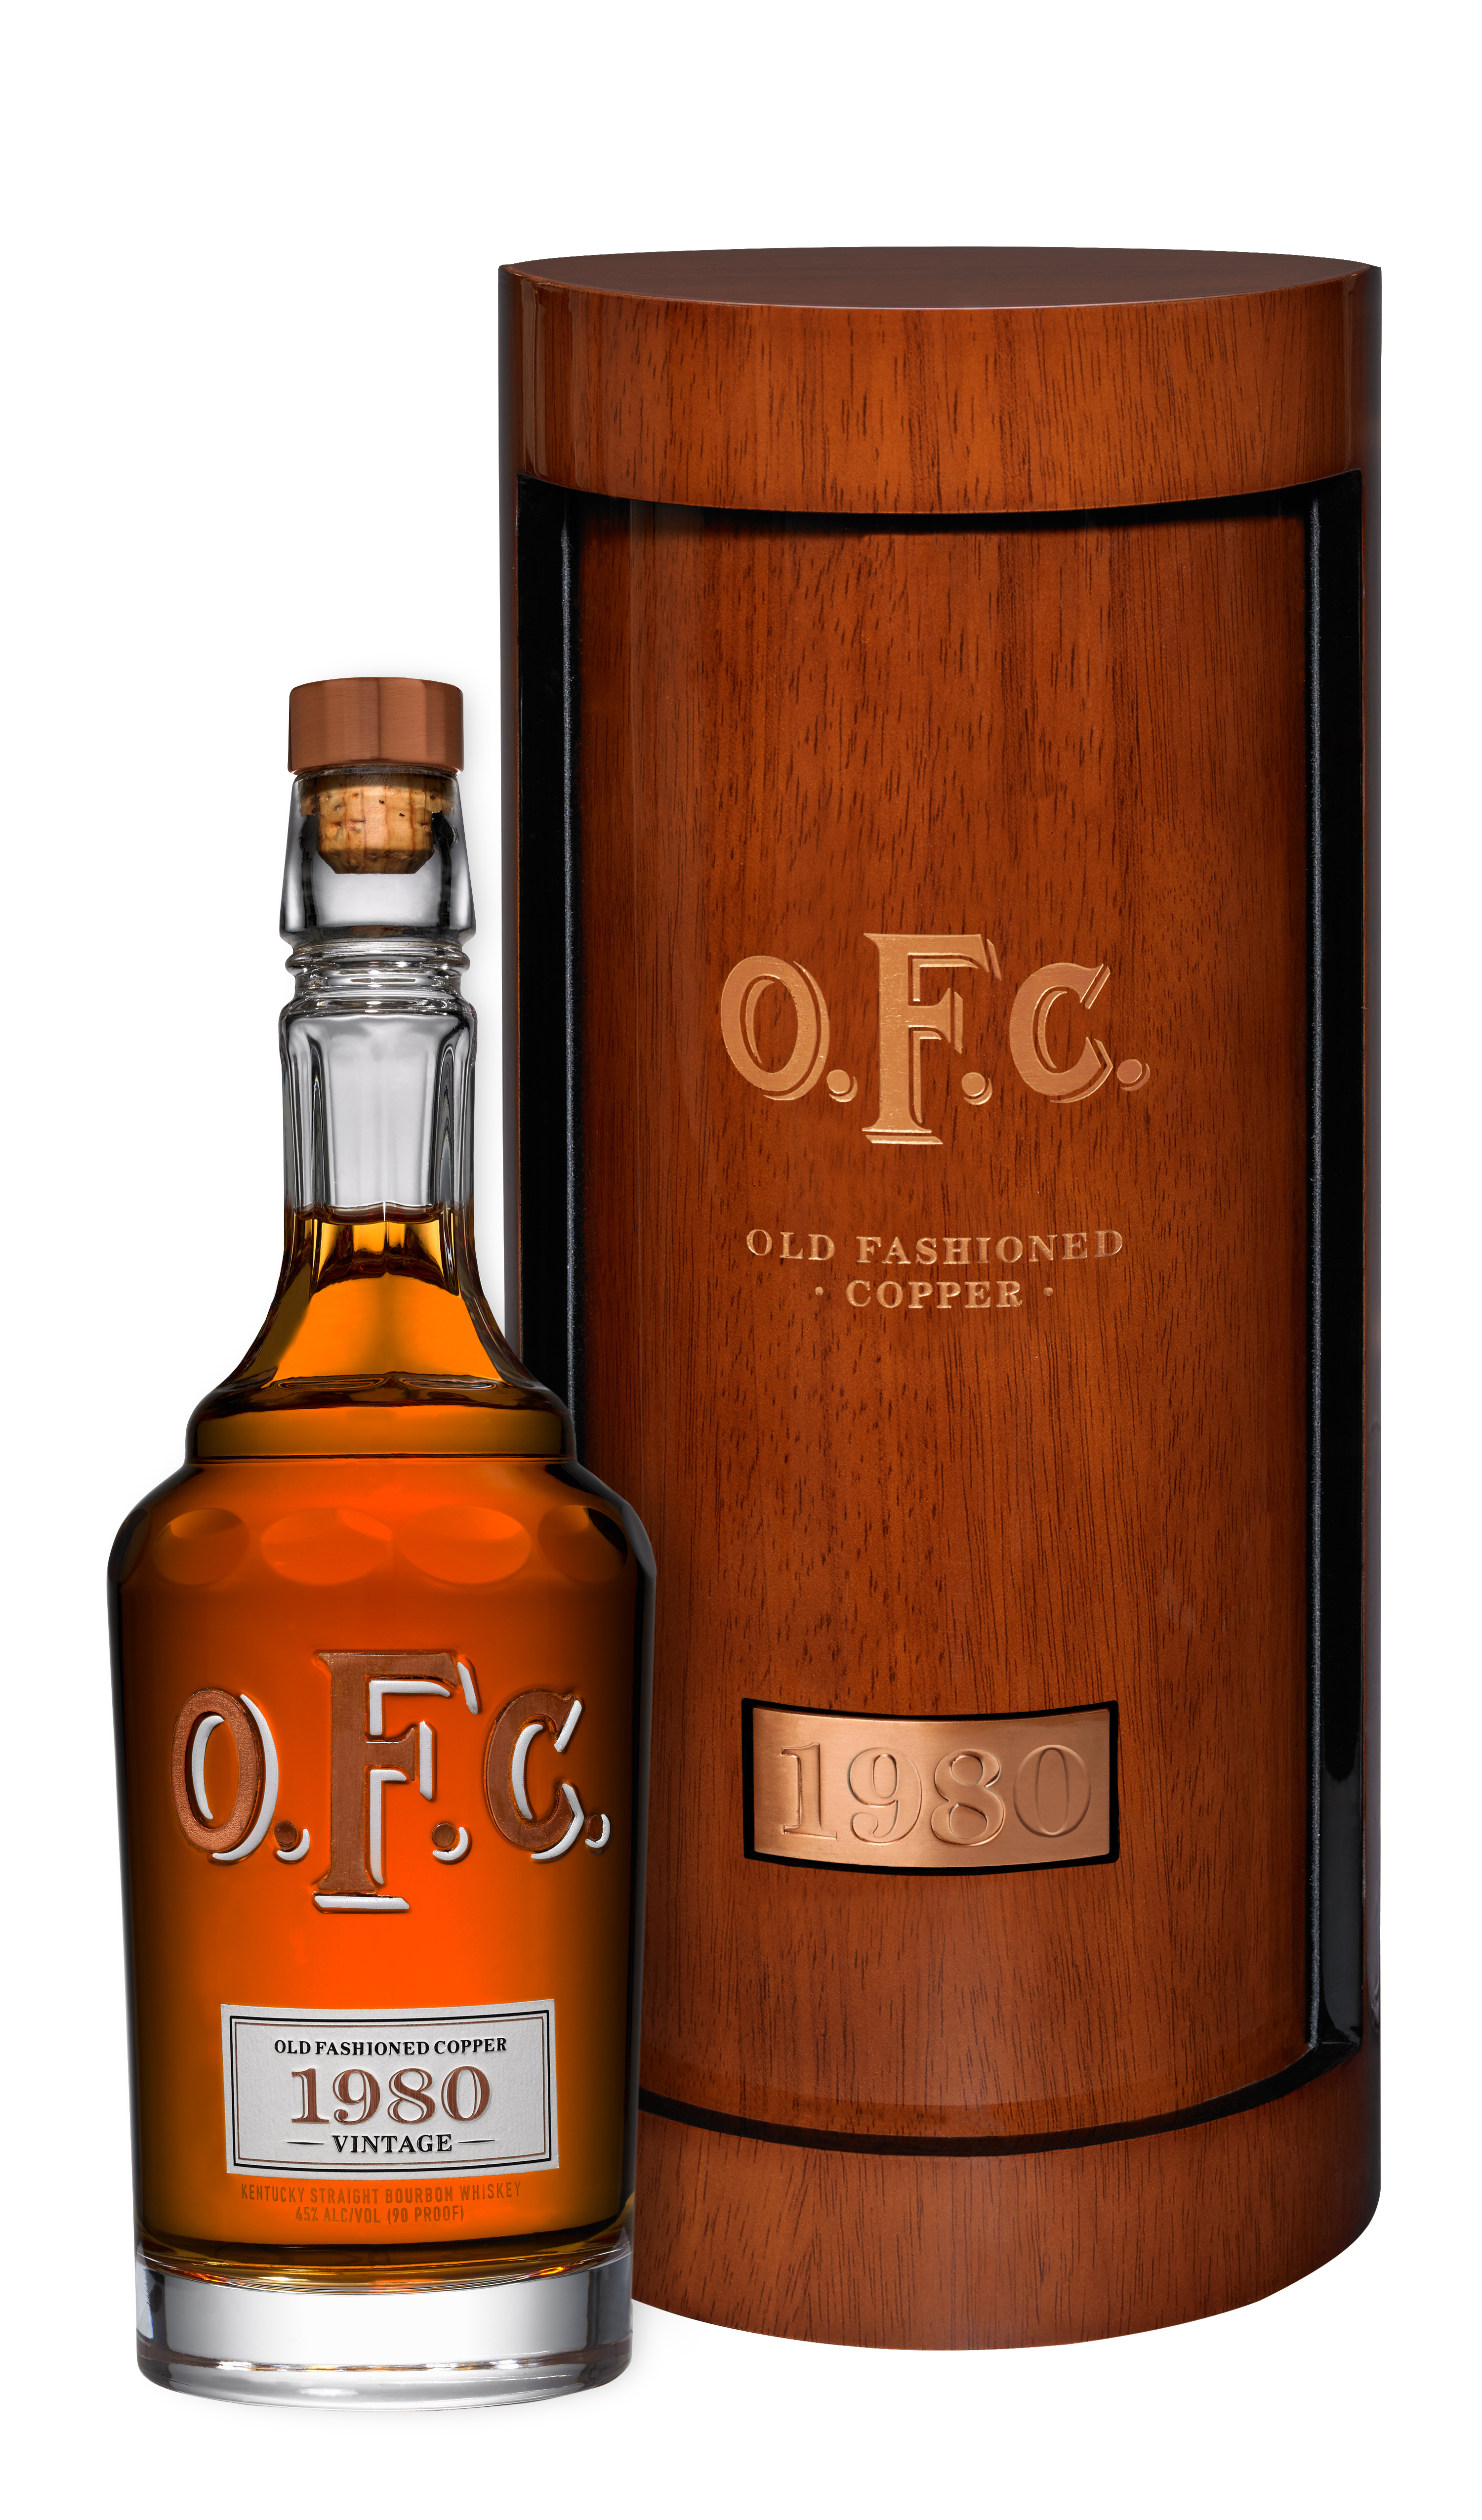 Buffalo Trace's New O.F.C. Bourbon